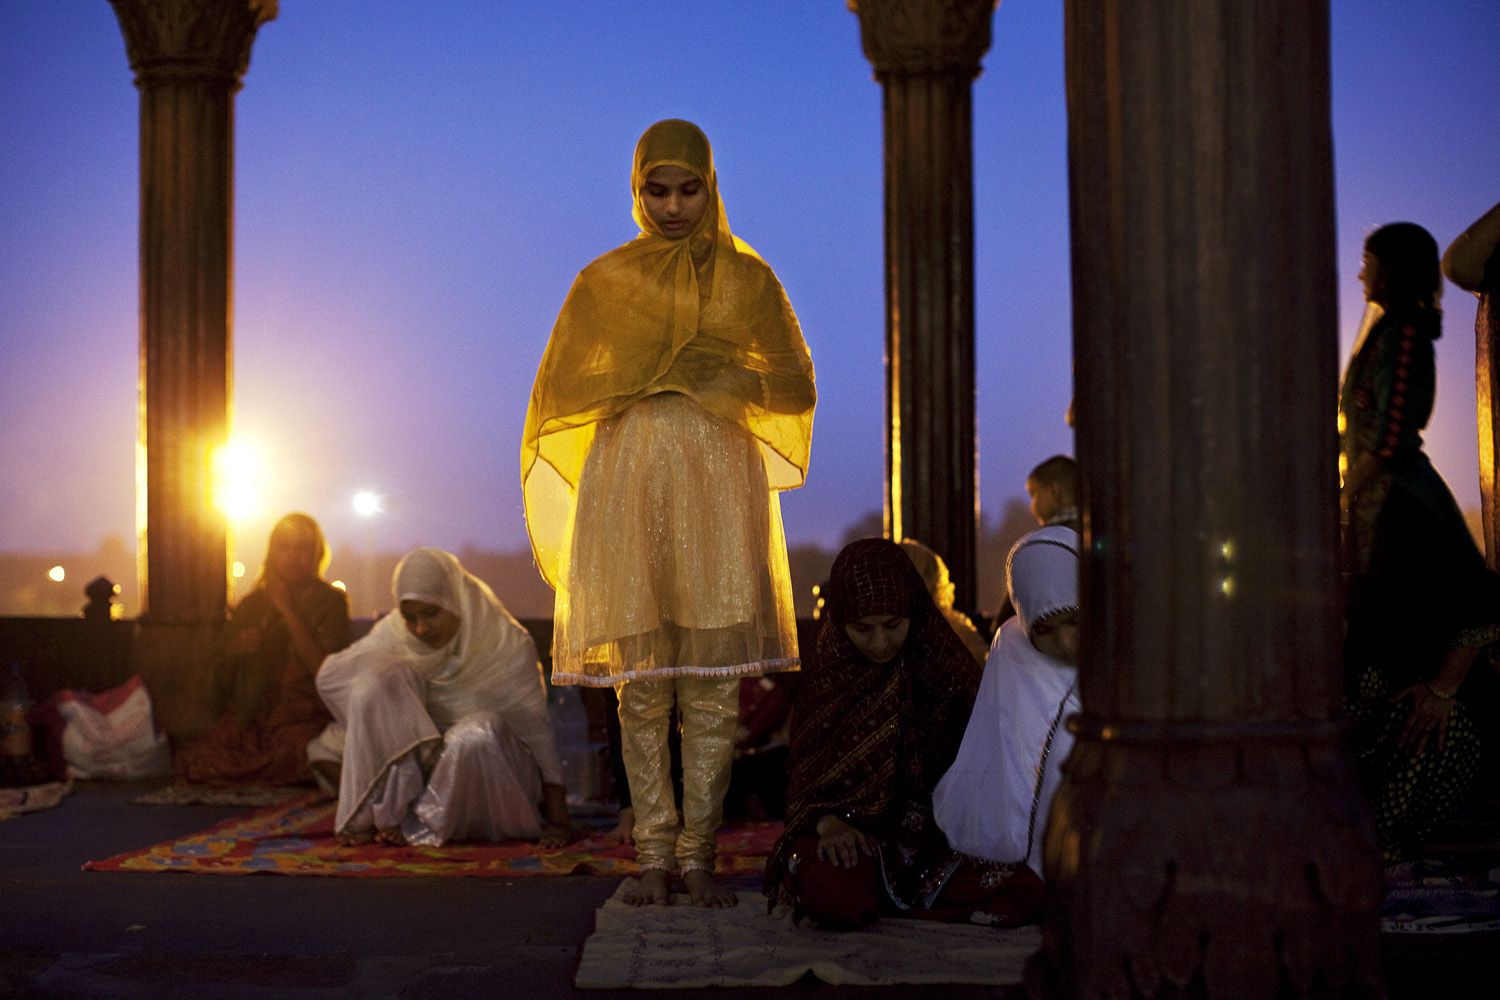 August 5, 2011. An Indian Muslim prays after breaking  the Ramadan fast at the Jama Masjid in New Delhi, India.